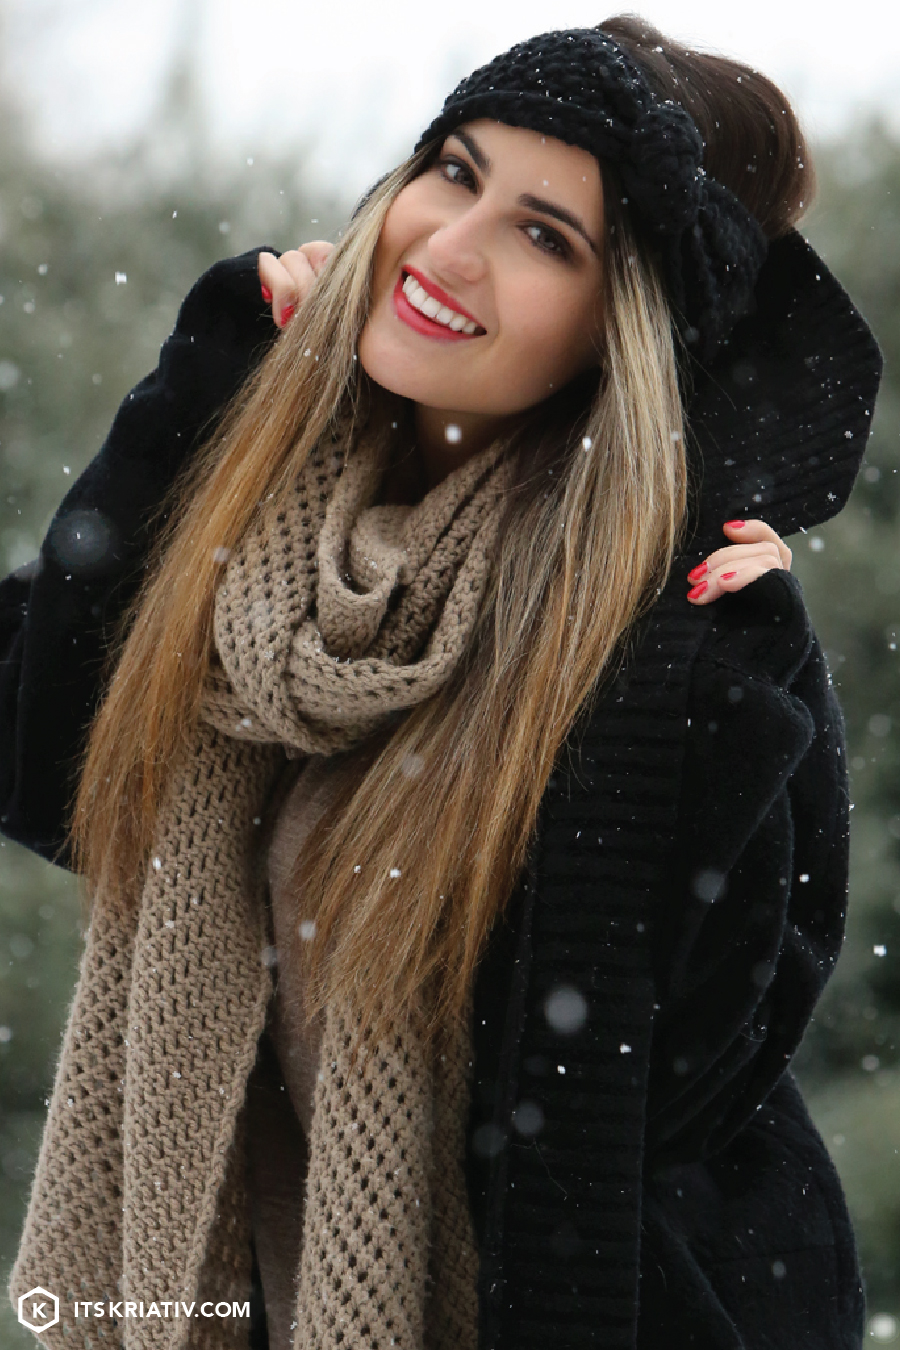 Its-Kriativ-Fashion-Let-It-Snow-Winter-06.jpg